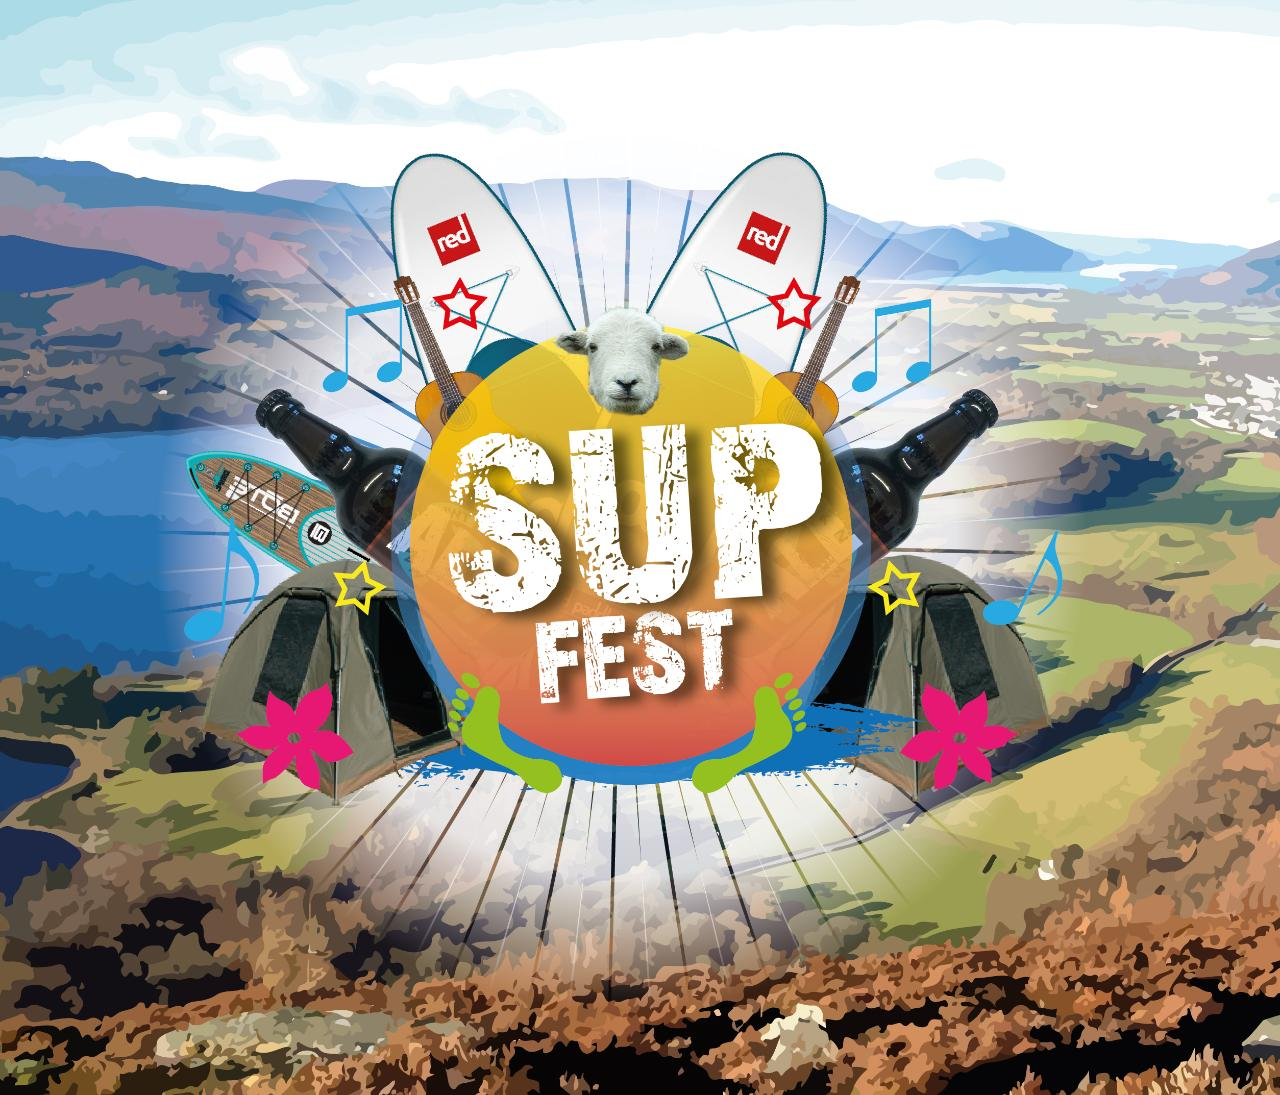 SUP FEST 31st May -3rd June 2019